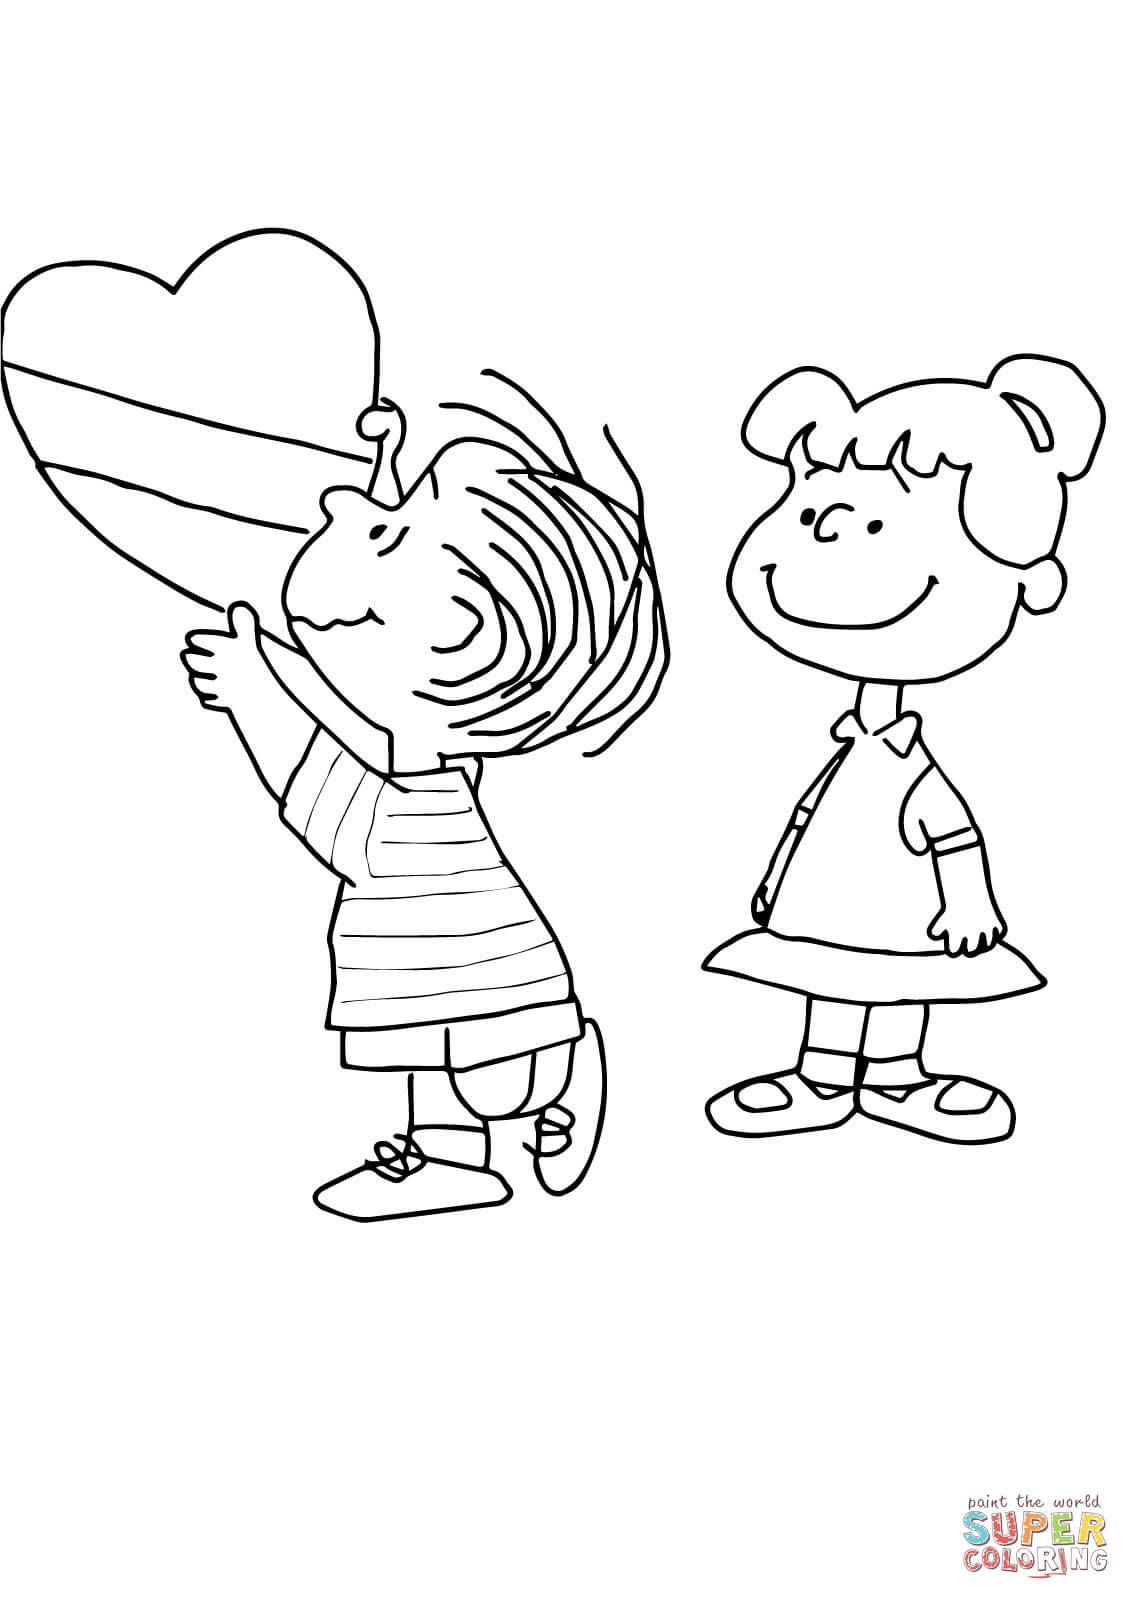 Charlie Brown Valentine coloring page | Free Printable Coloring Pages